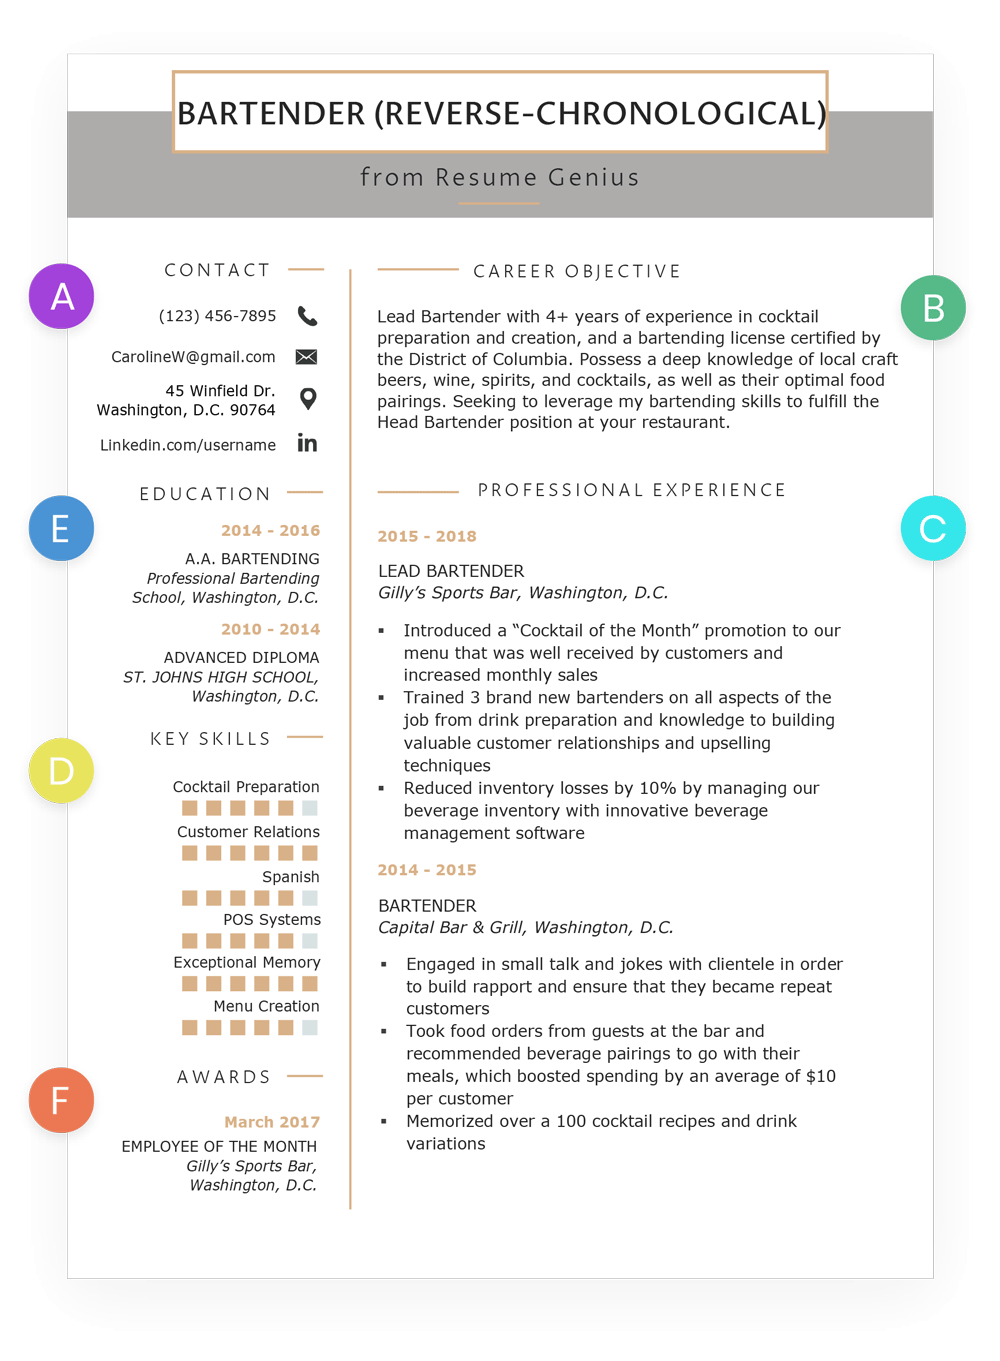 How To Write A Resumer How To Write A Great Resume The Complete Guide Resume Genius